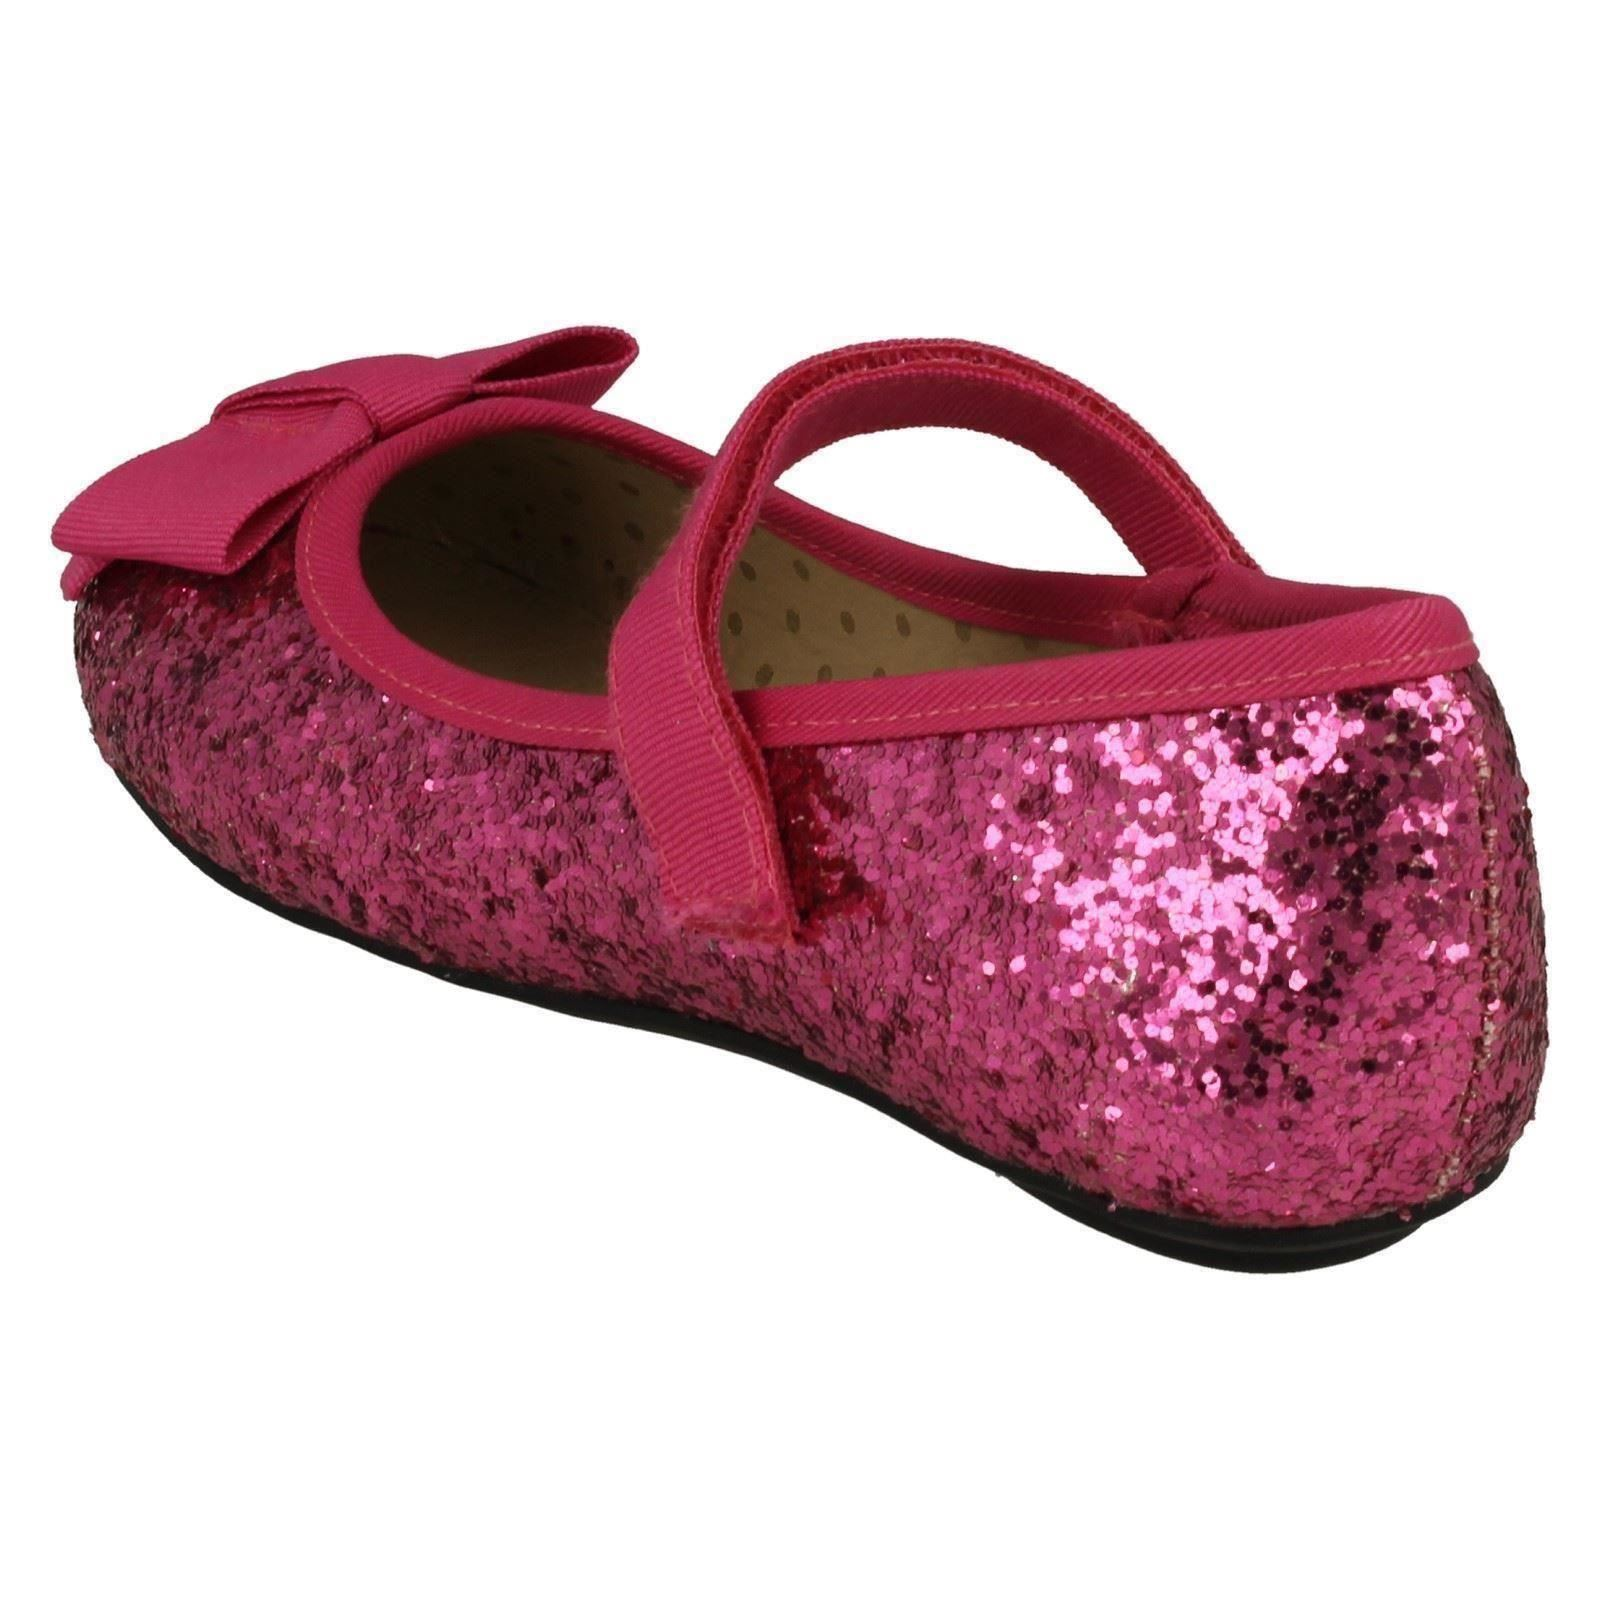 Girls Cutie Flat Glittery Party Shoes